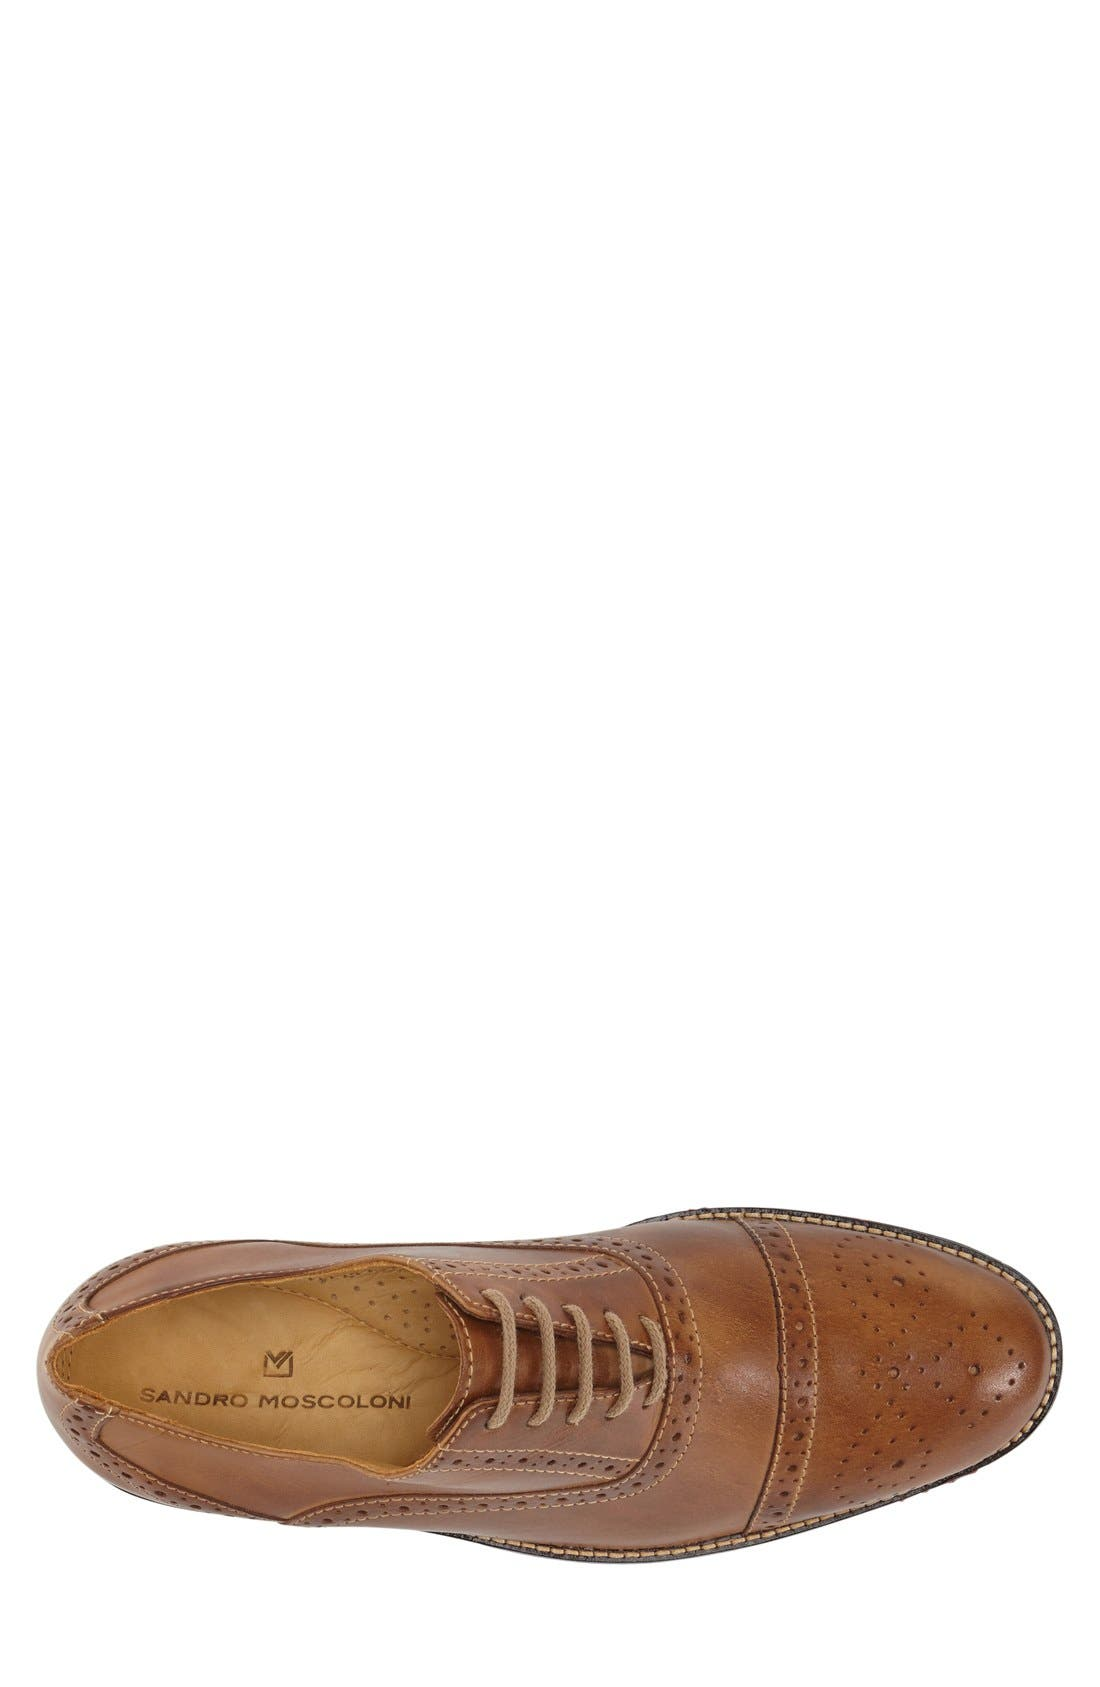 'Barrett' Cap Toe Oxford,                             Alternate thumbnail 3, color,                             Tan